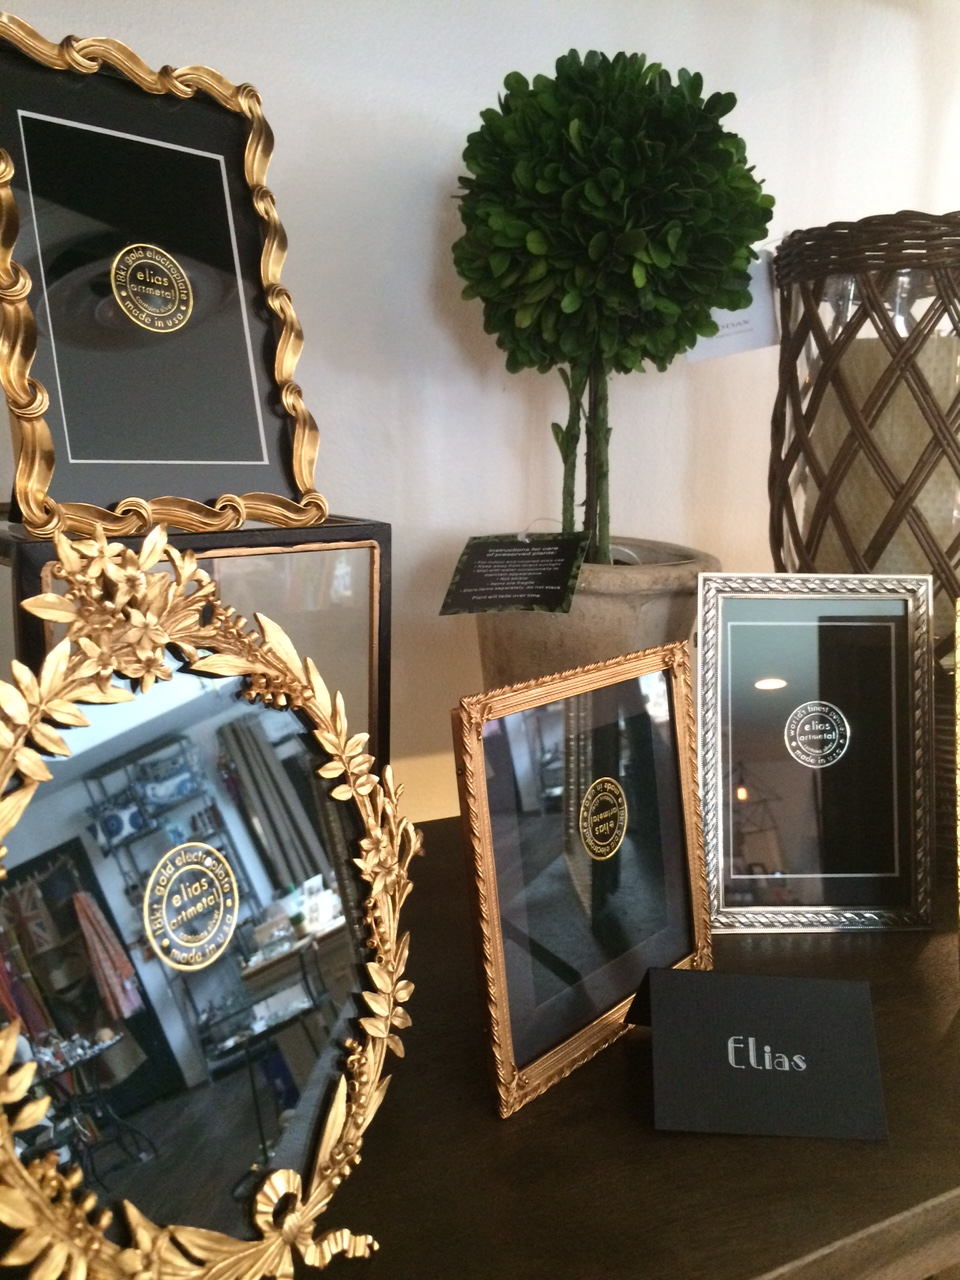 What Mother wouldn't love a picture of her family in a beautiful keepsake frame? The elegant Elias Artmetal frames are made in either 18 carat gold or pewter and will be a treasured heirloom for years to come.